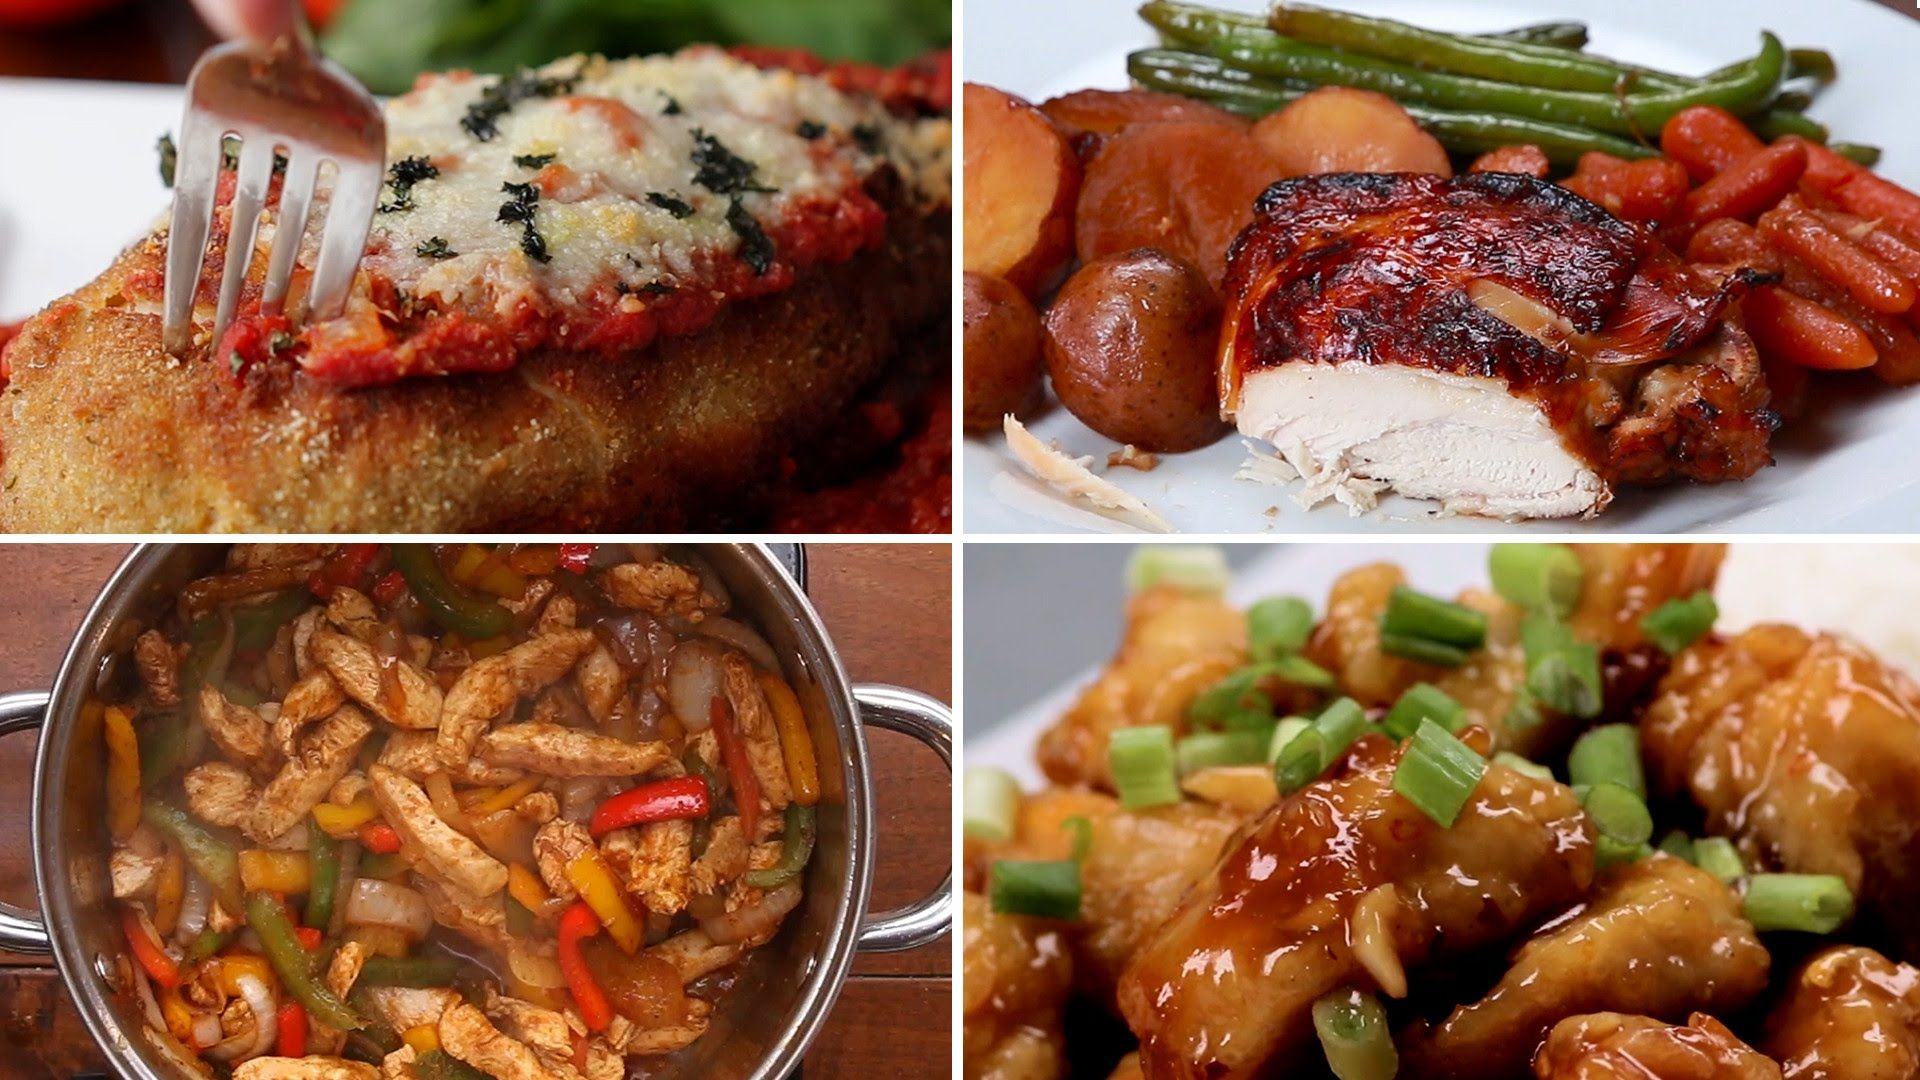 7 easy chicken dinners youtube videos pinterest dinners meals 7 easy chicken dinners youtube forumfinder Images